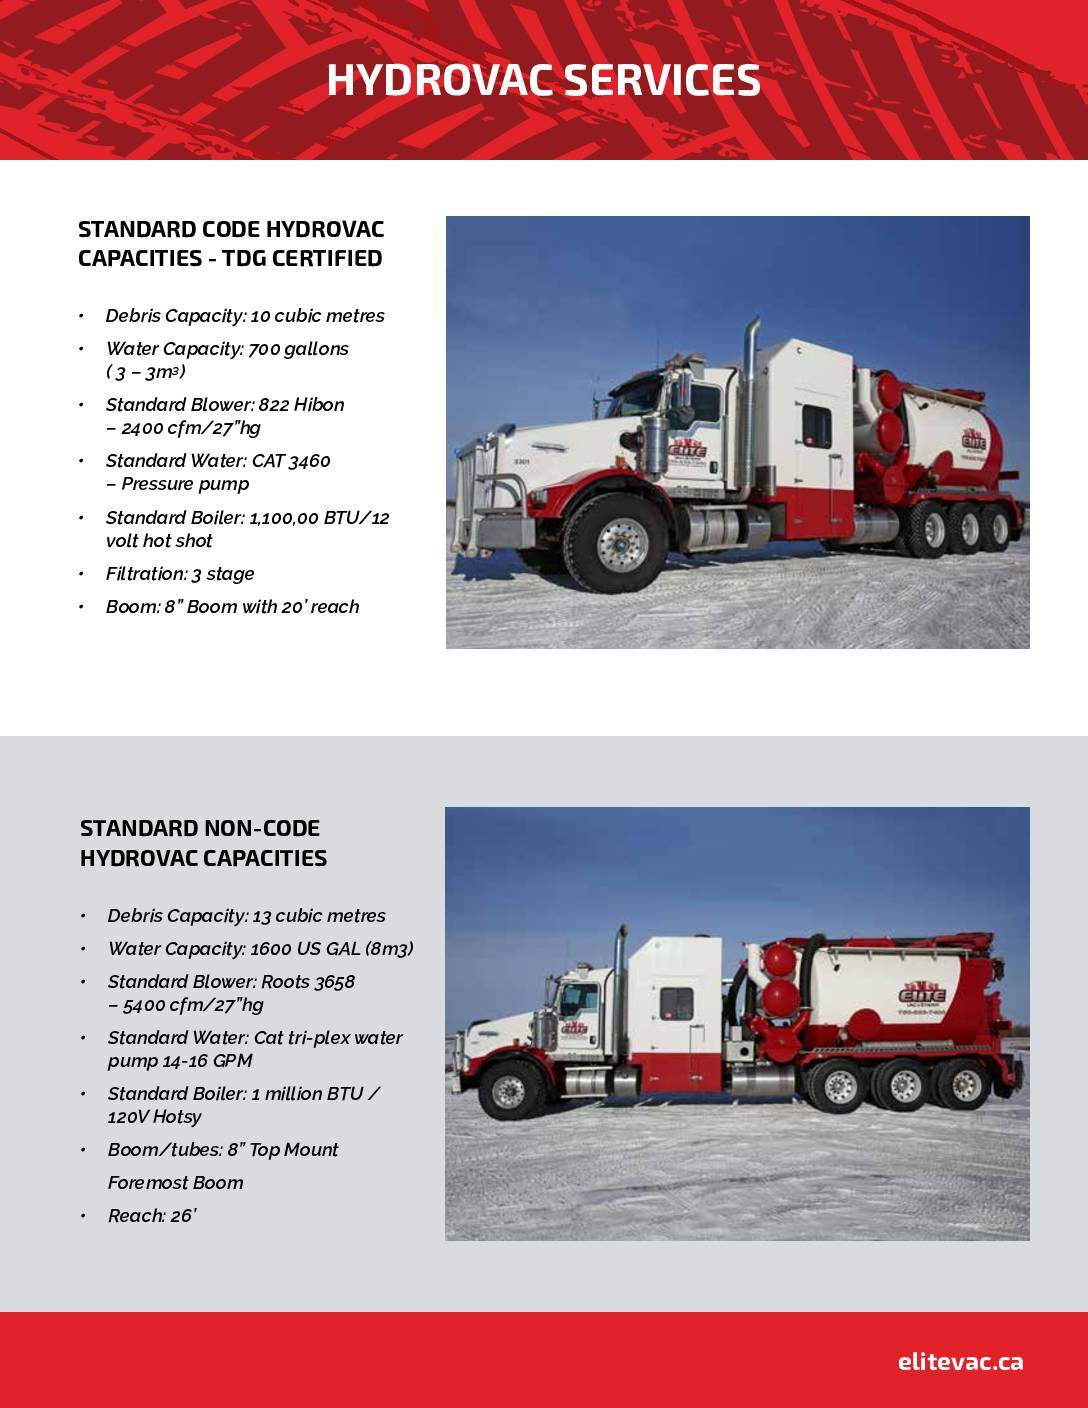 Elite – Hydrovac Services